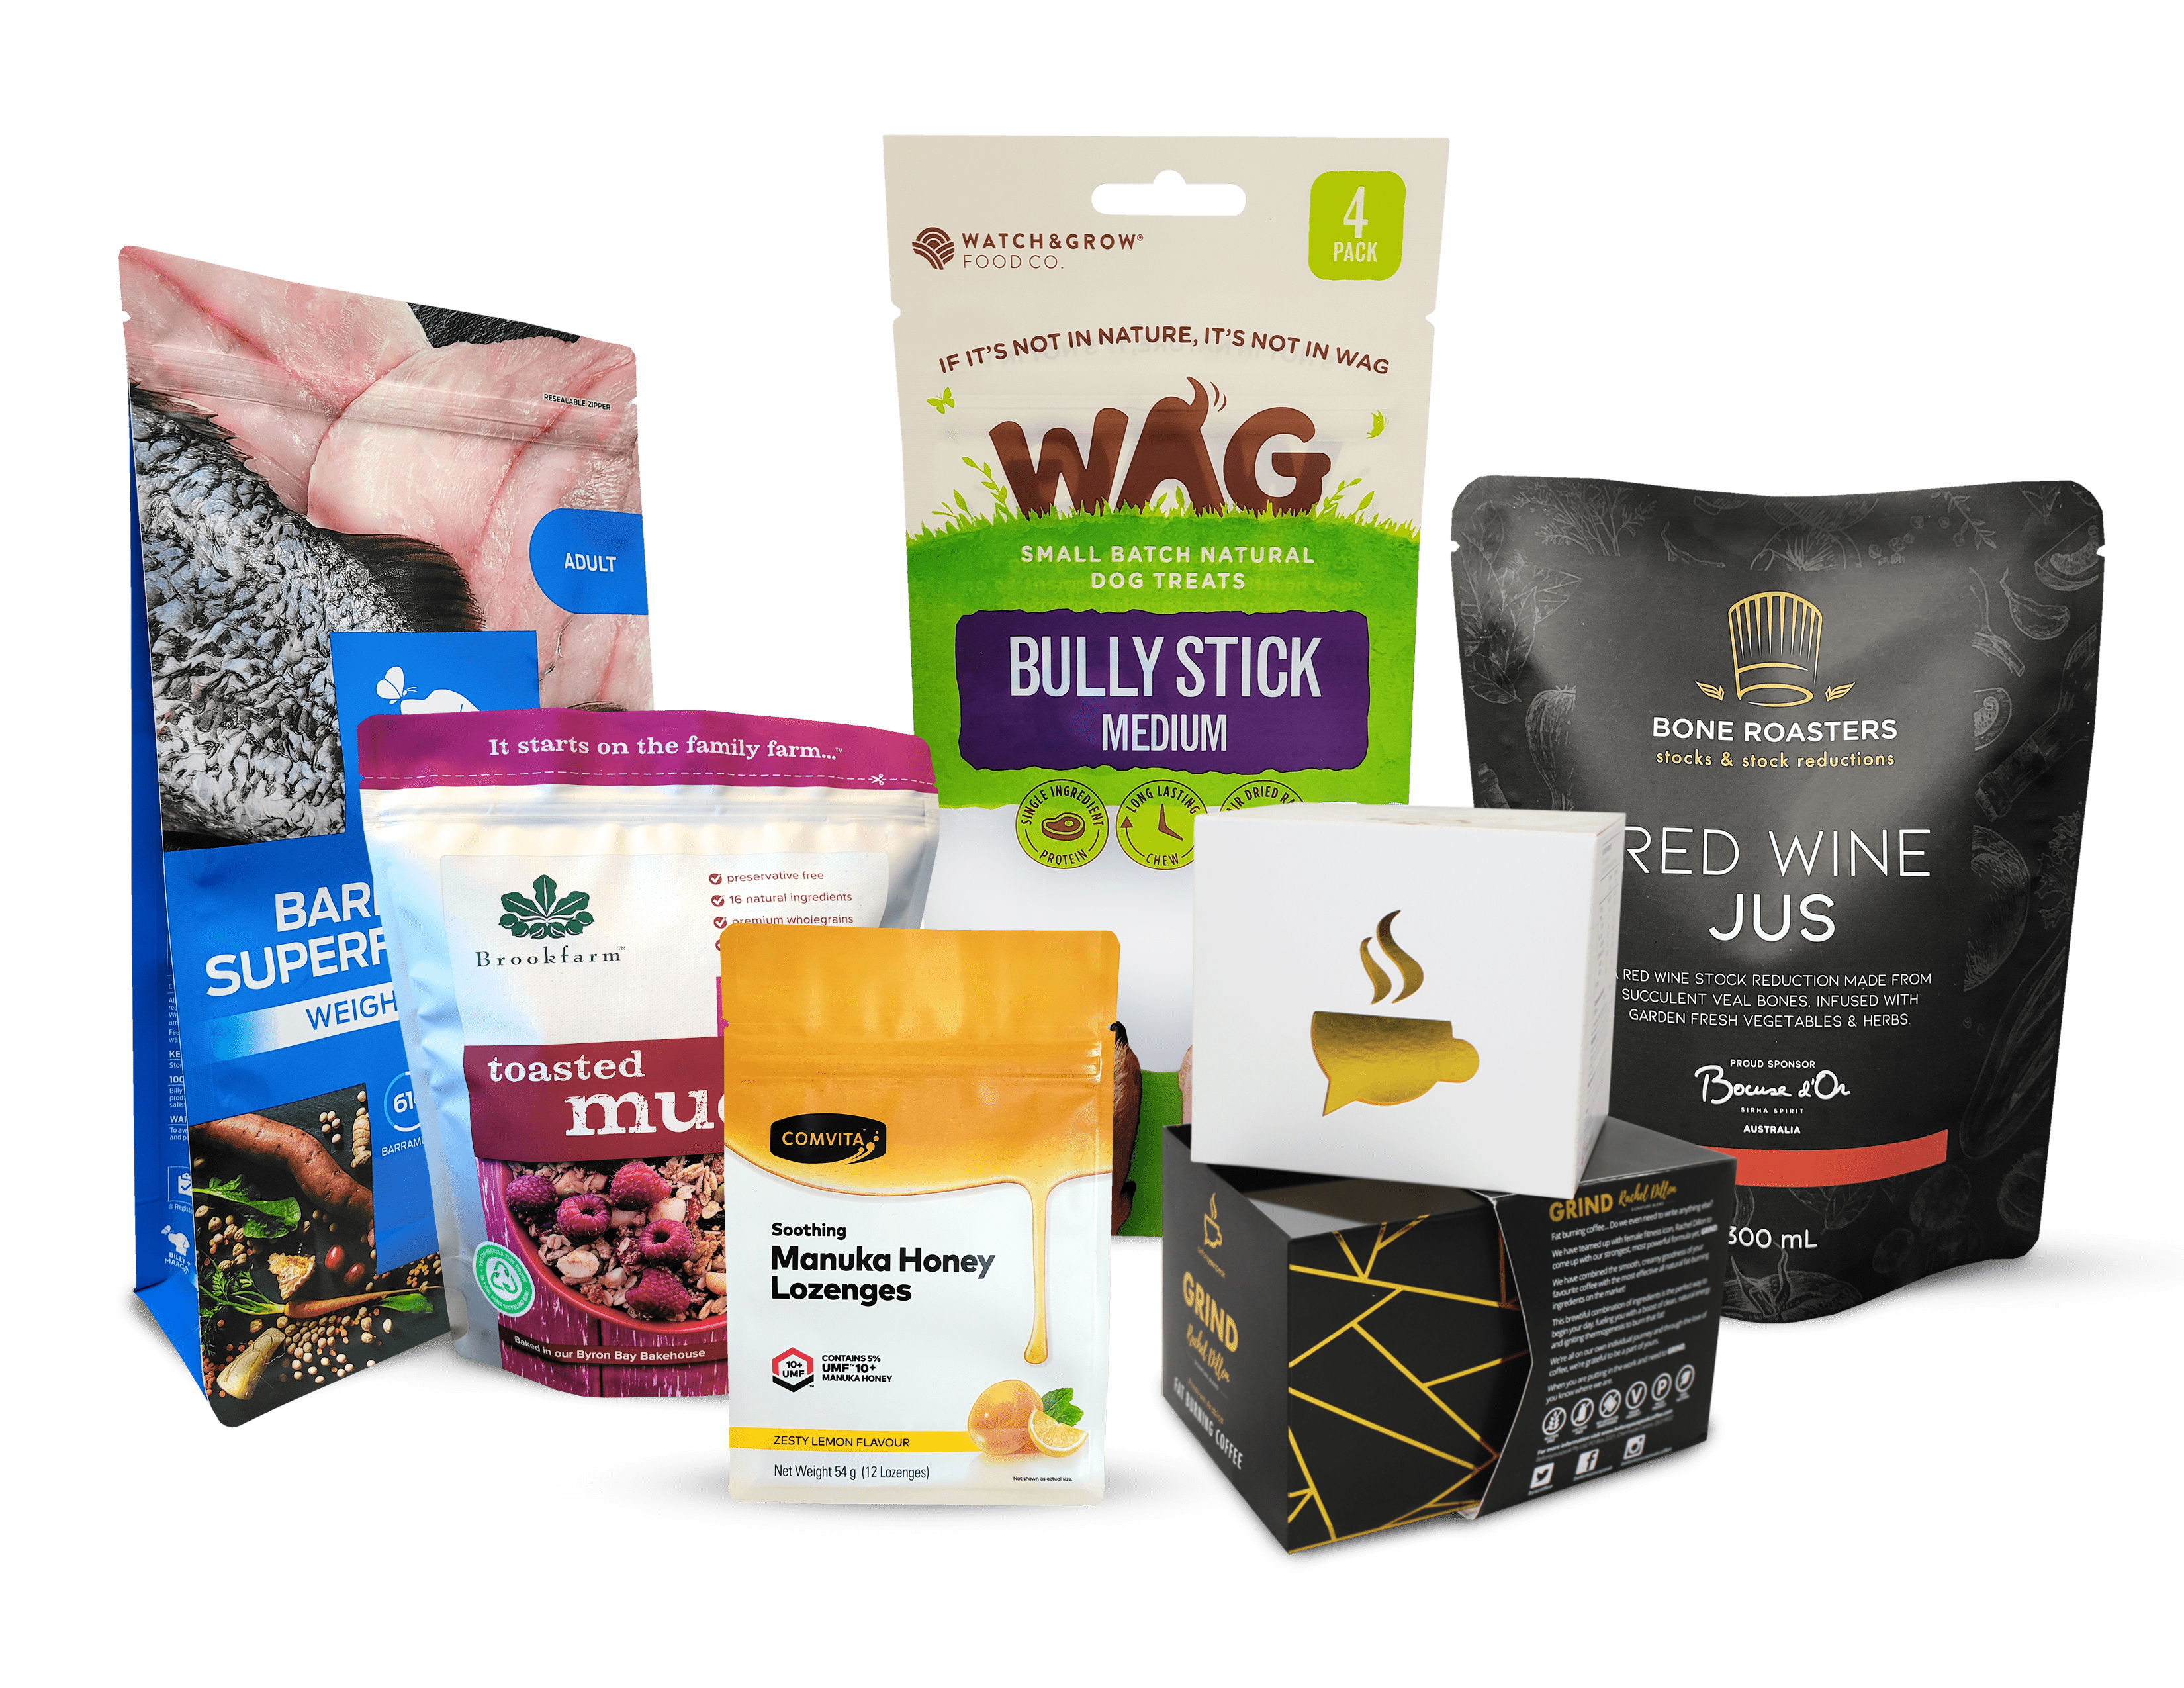 custom product packaging in Australia by O F Pack